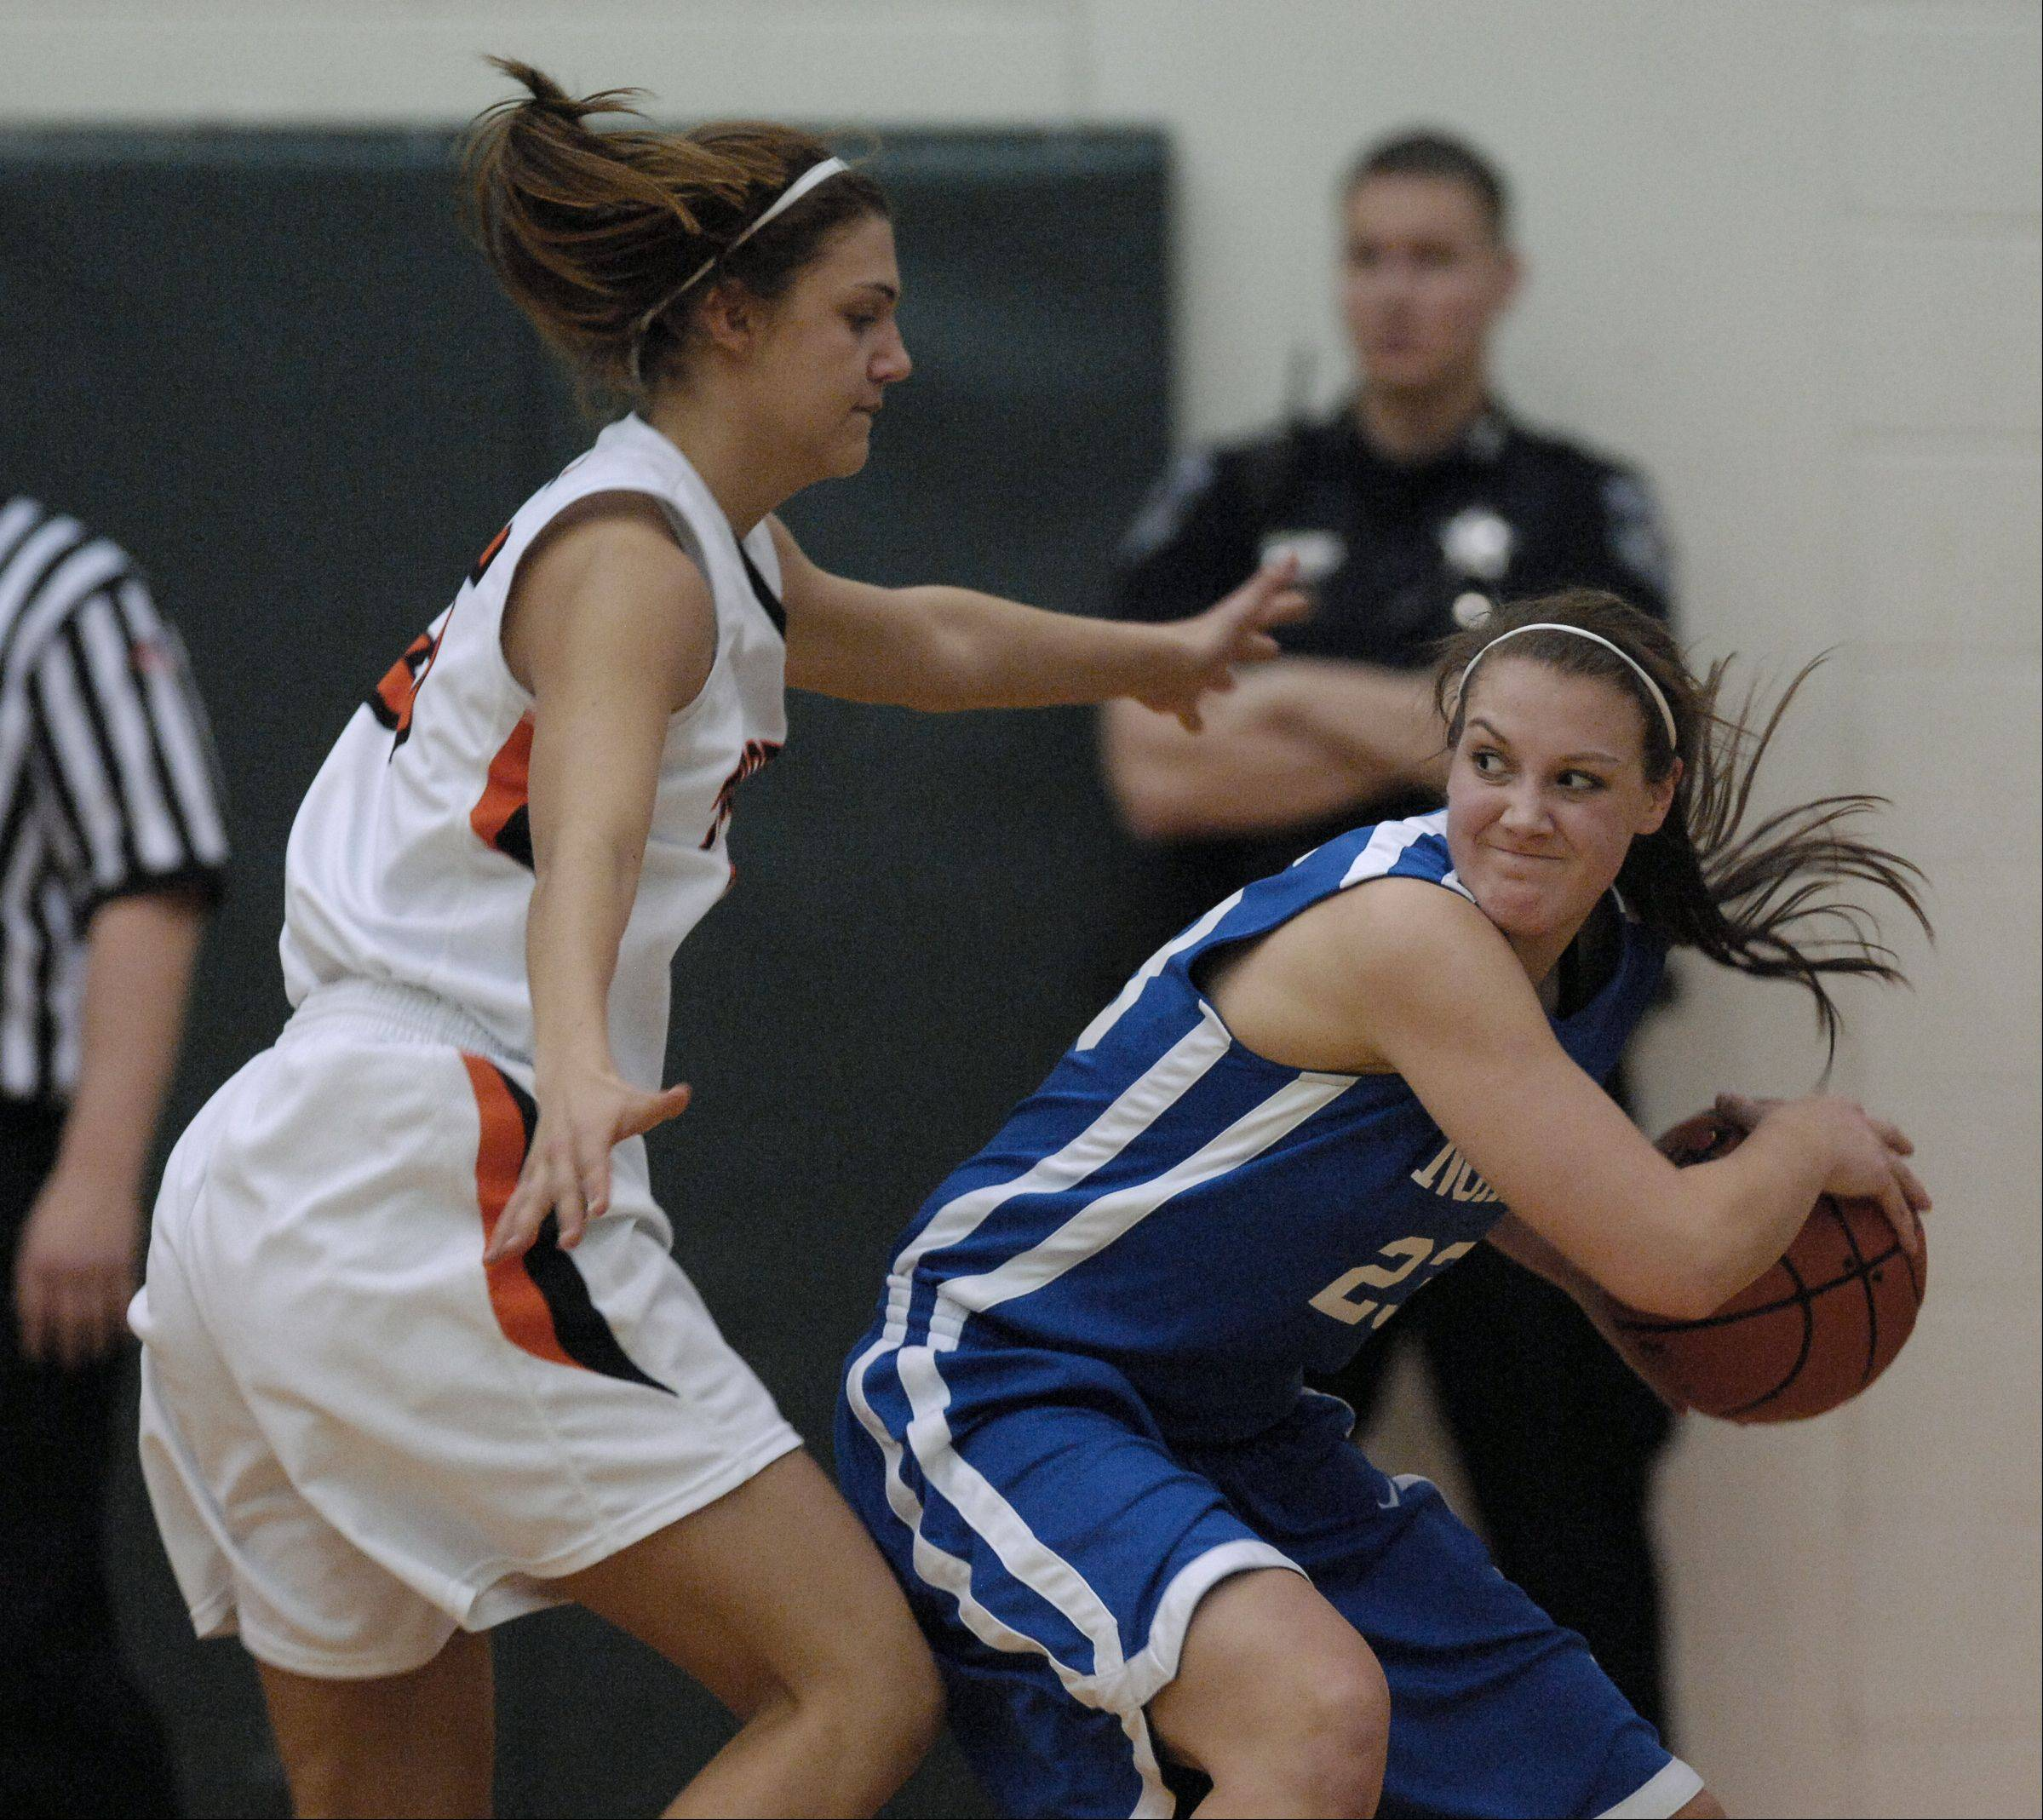 Wheaton Warrenville South's Alyssa Zappia guards Wheaton North's Chrissy Baird Thursday during the Class 4A girls basketball sectional final at Bartlett High School.